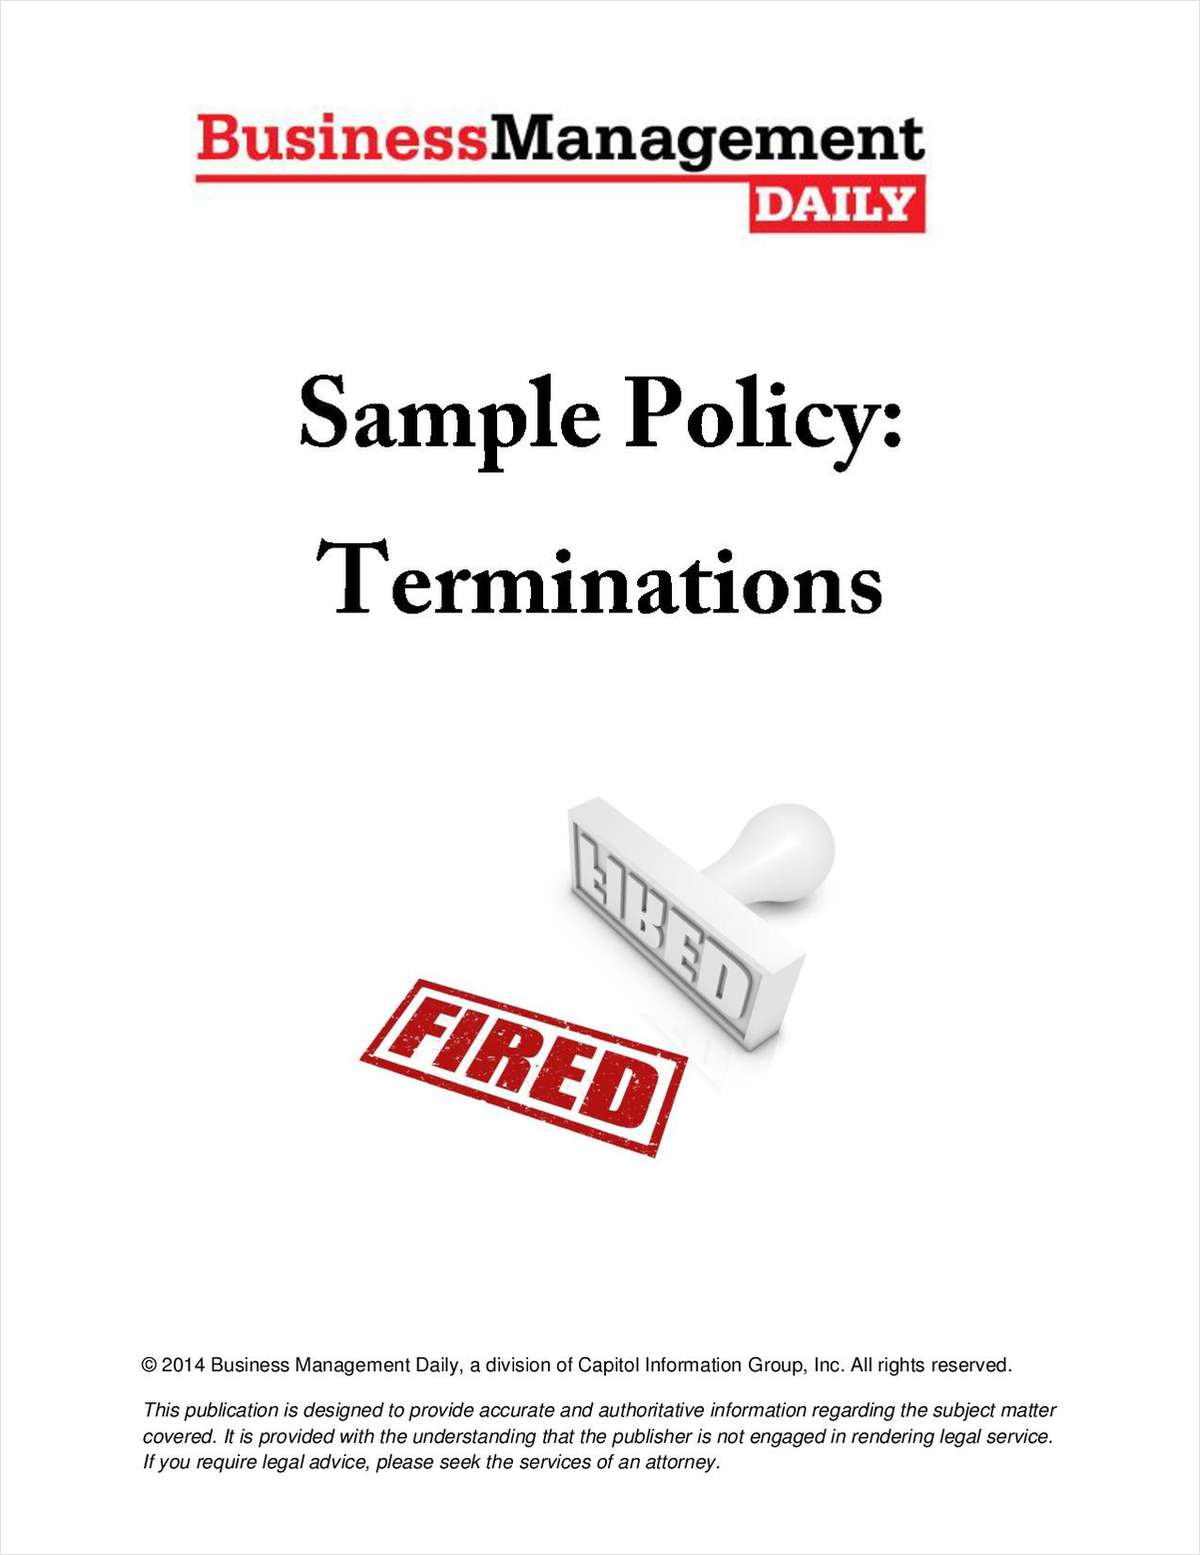 Sample Policy for Terminations